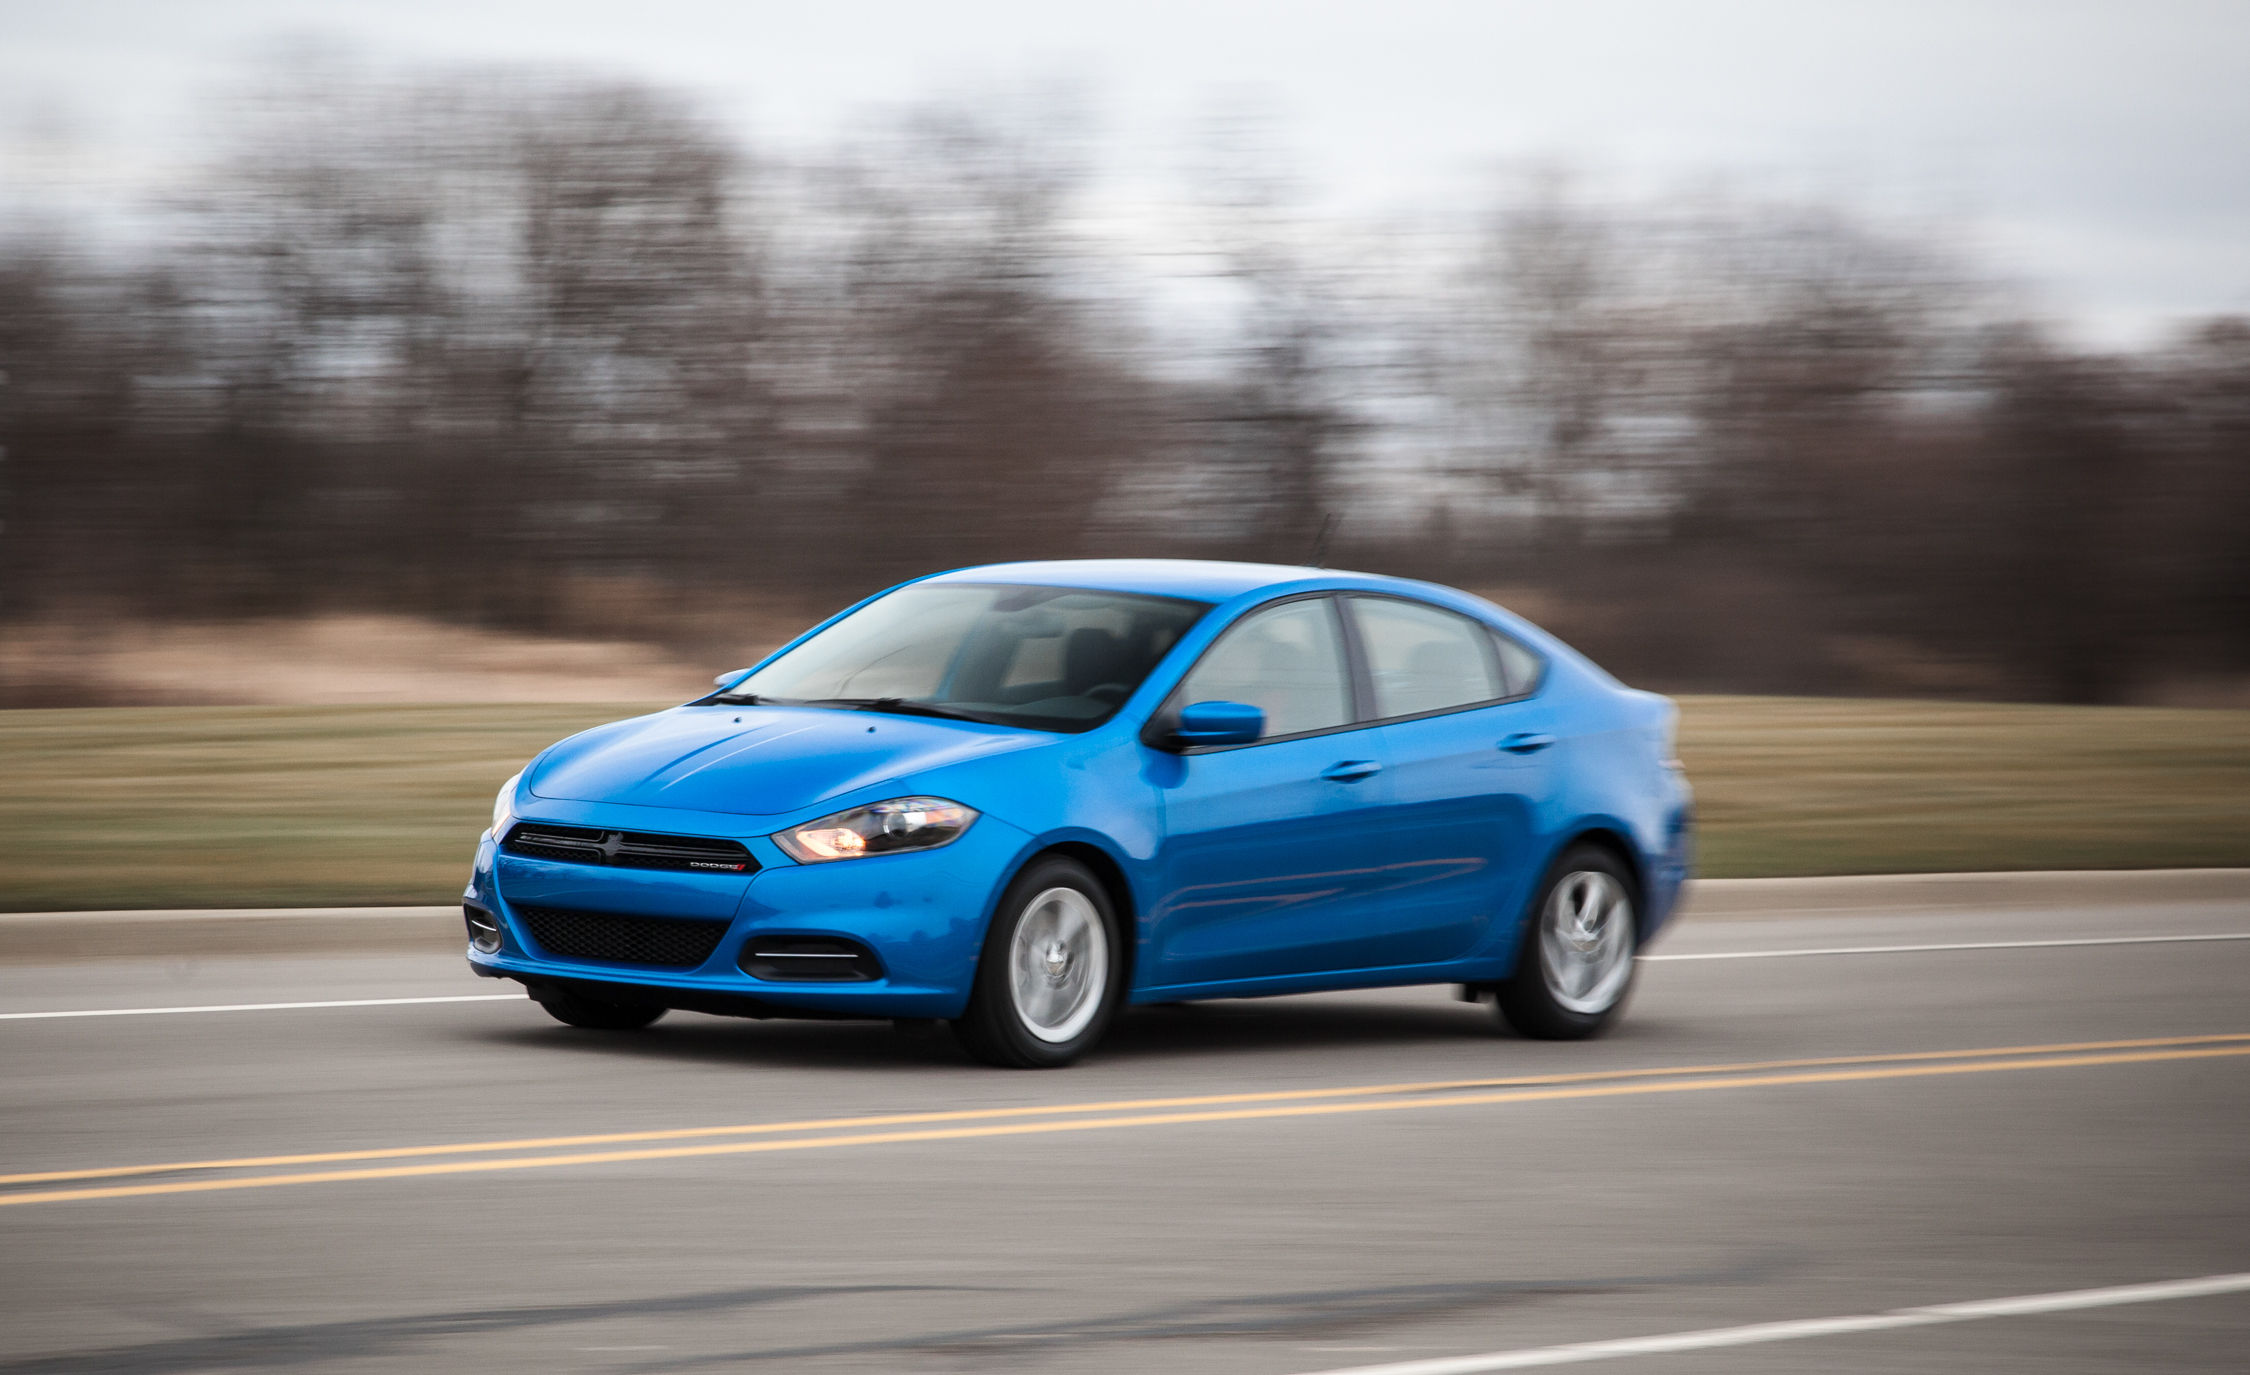 2015 Dodge Dart SXT (View 4 of 14)